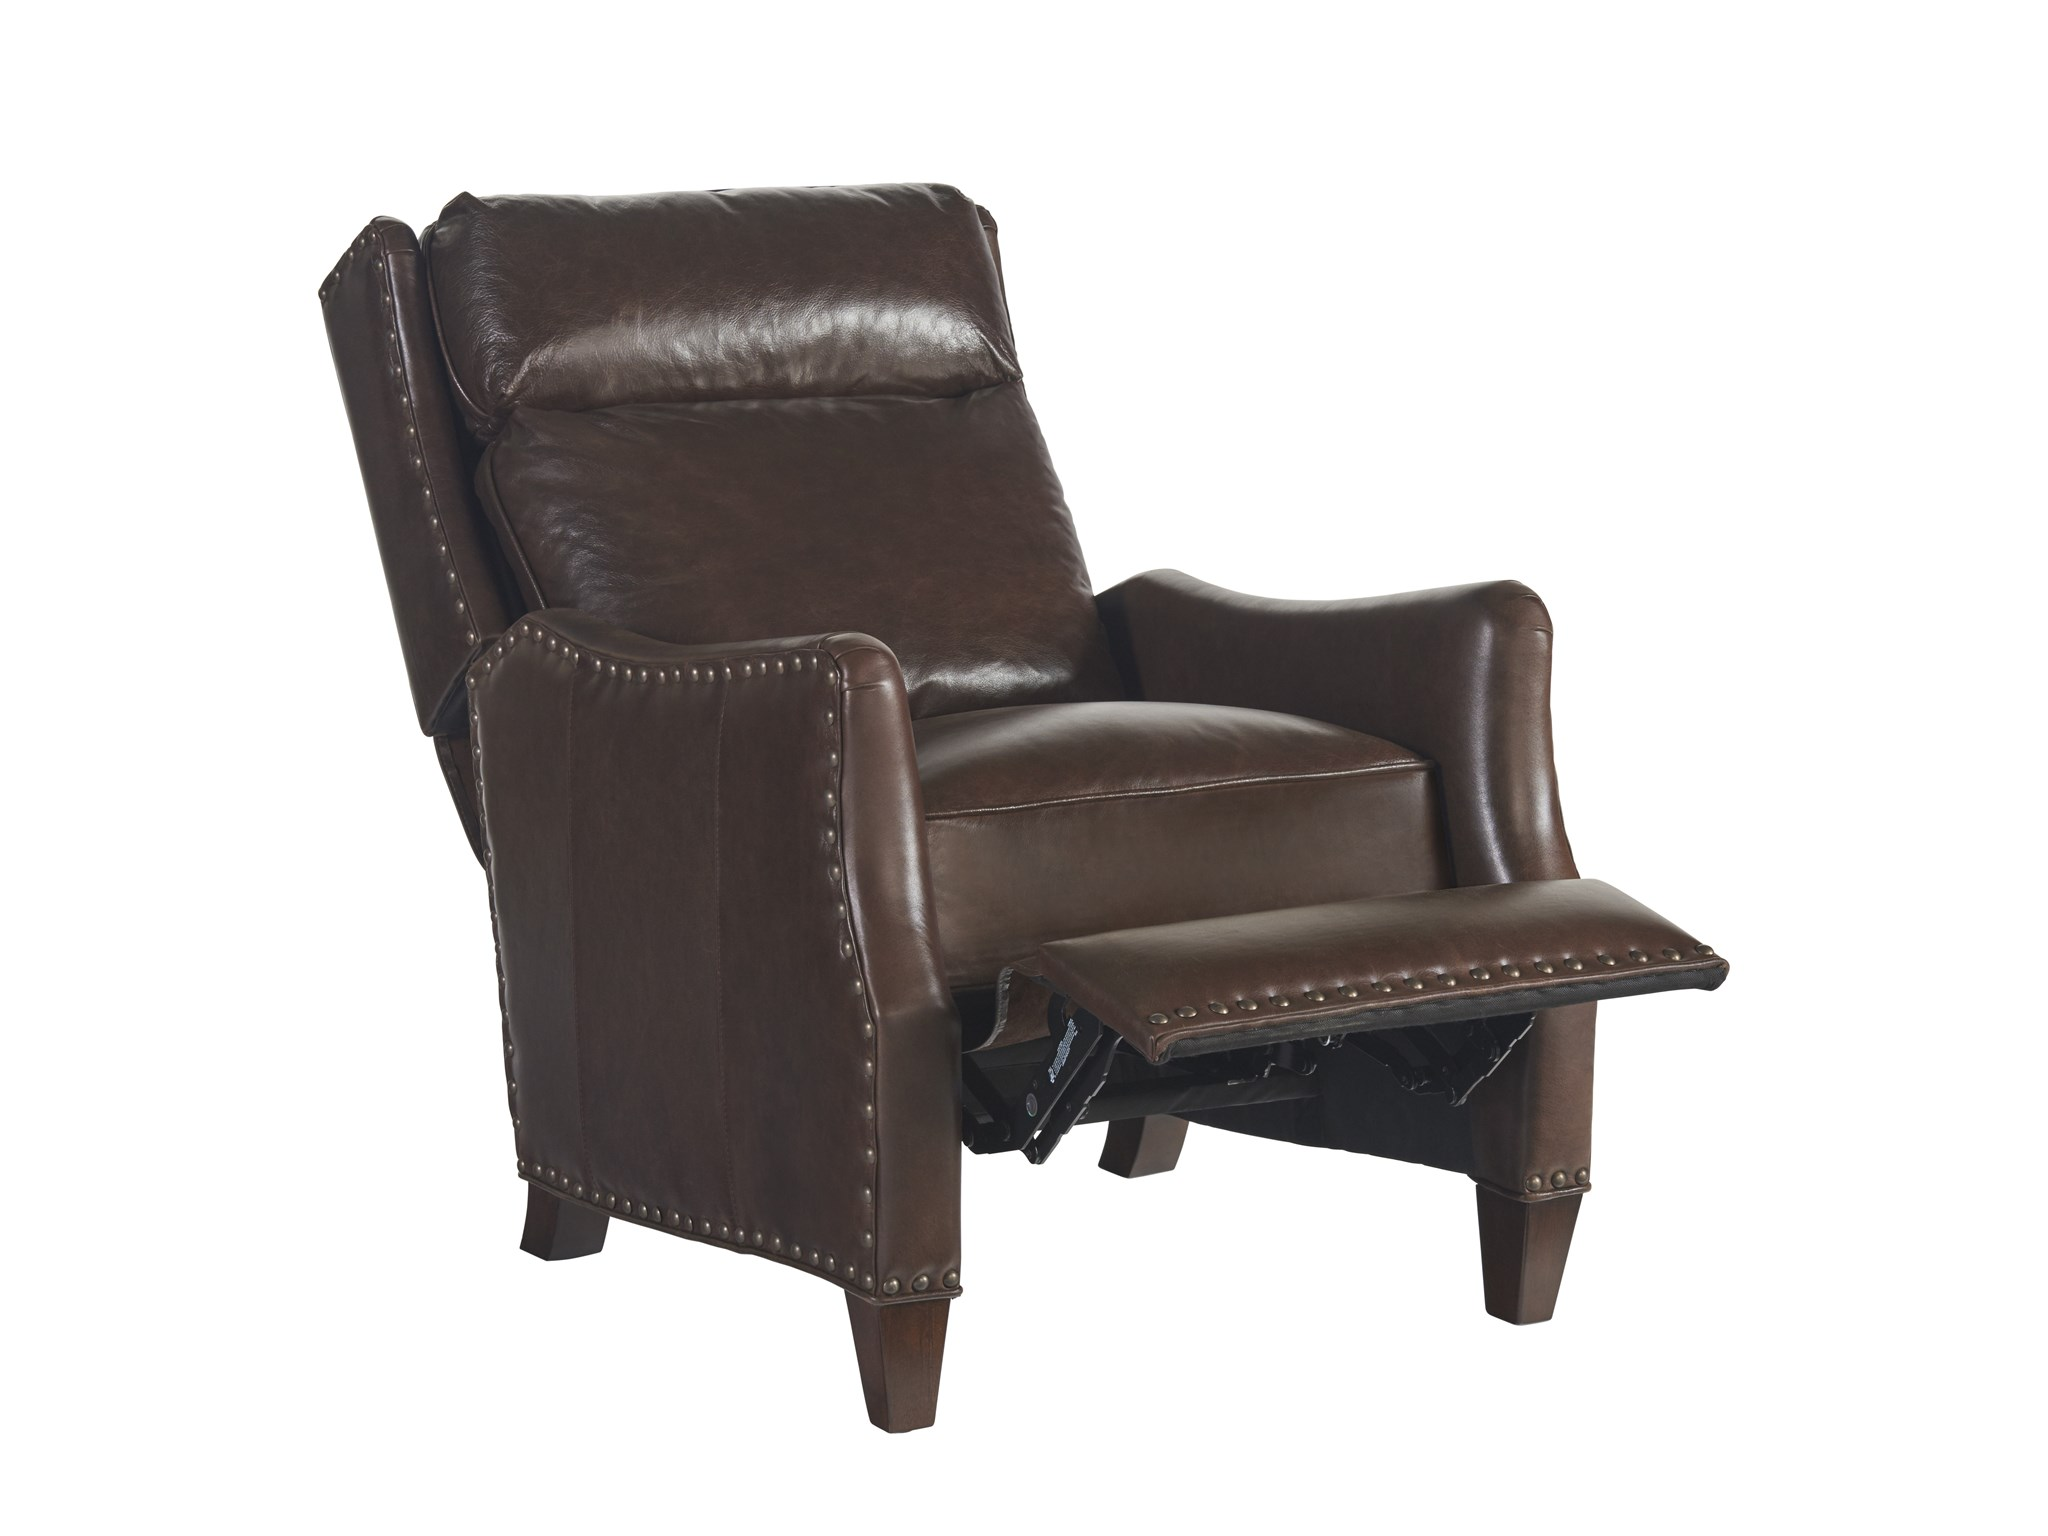 The Jackson Power Recliner